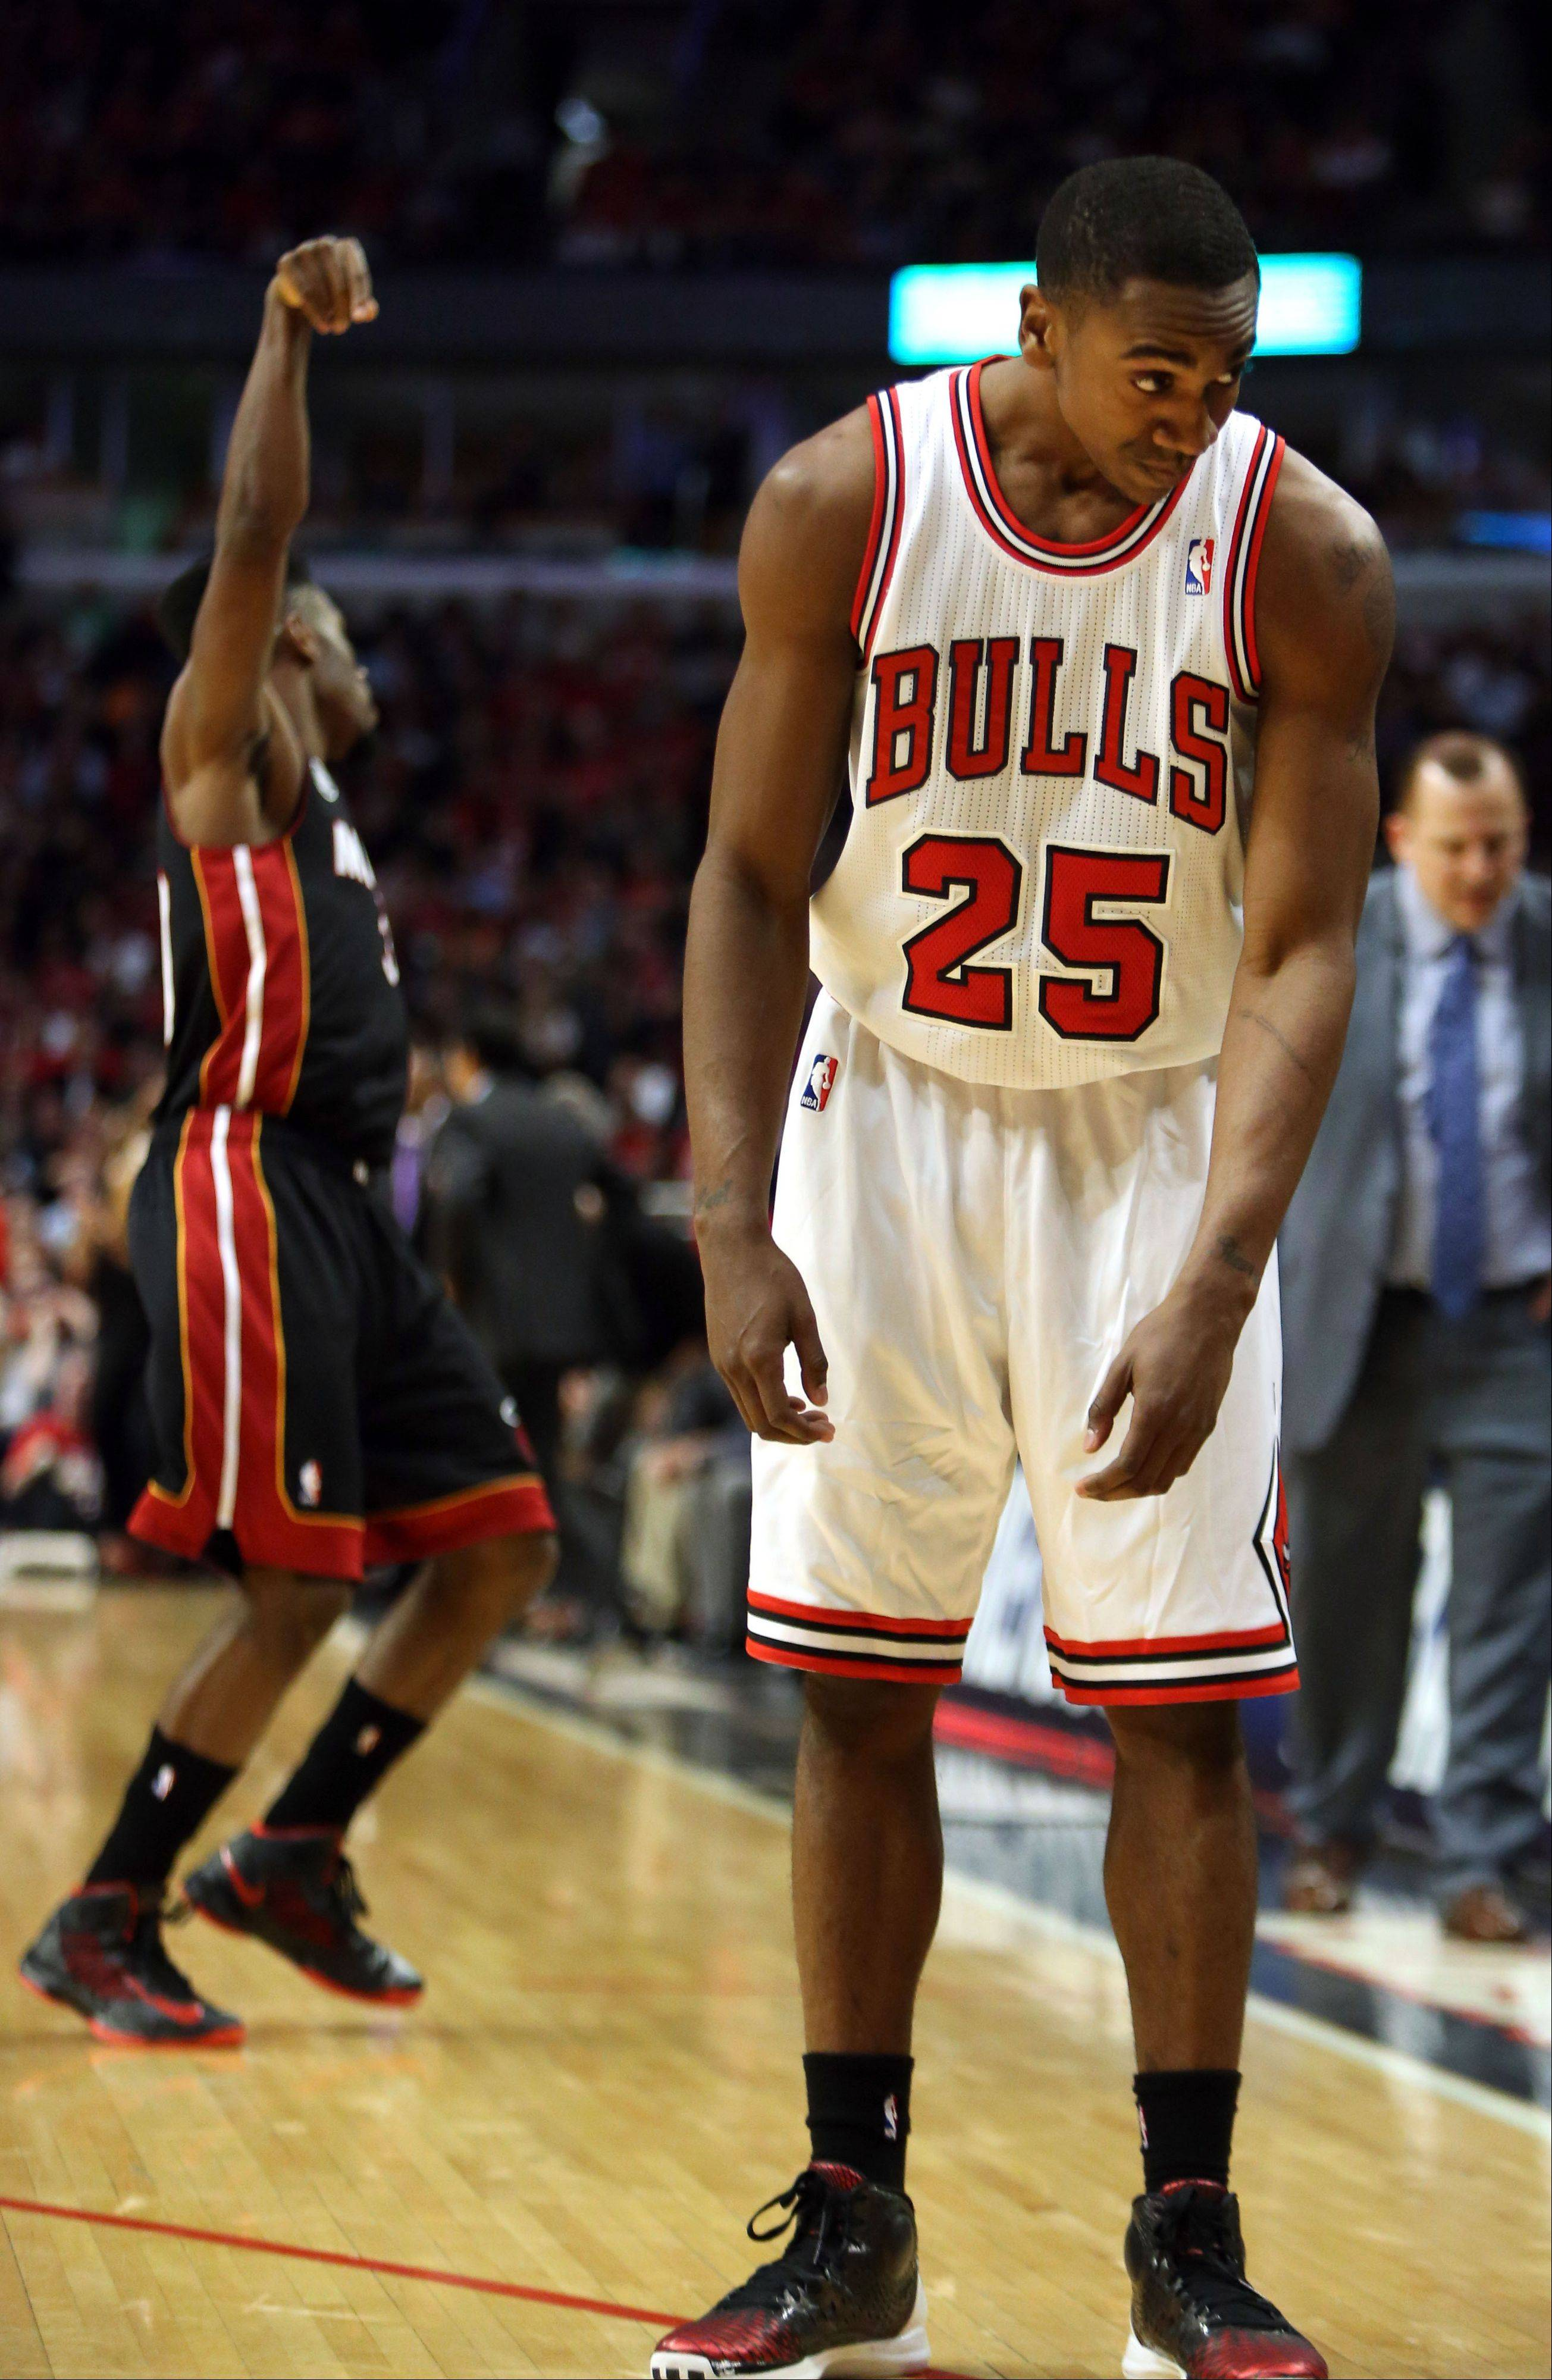 Bulls guard Marquis Teague can't believe the 3-point shot made by Miami's Norris Cole at the buzzer to close the first half during Game 4 on Monday night at the United Center.